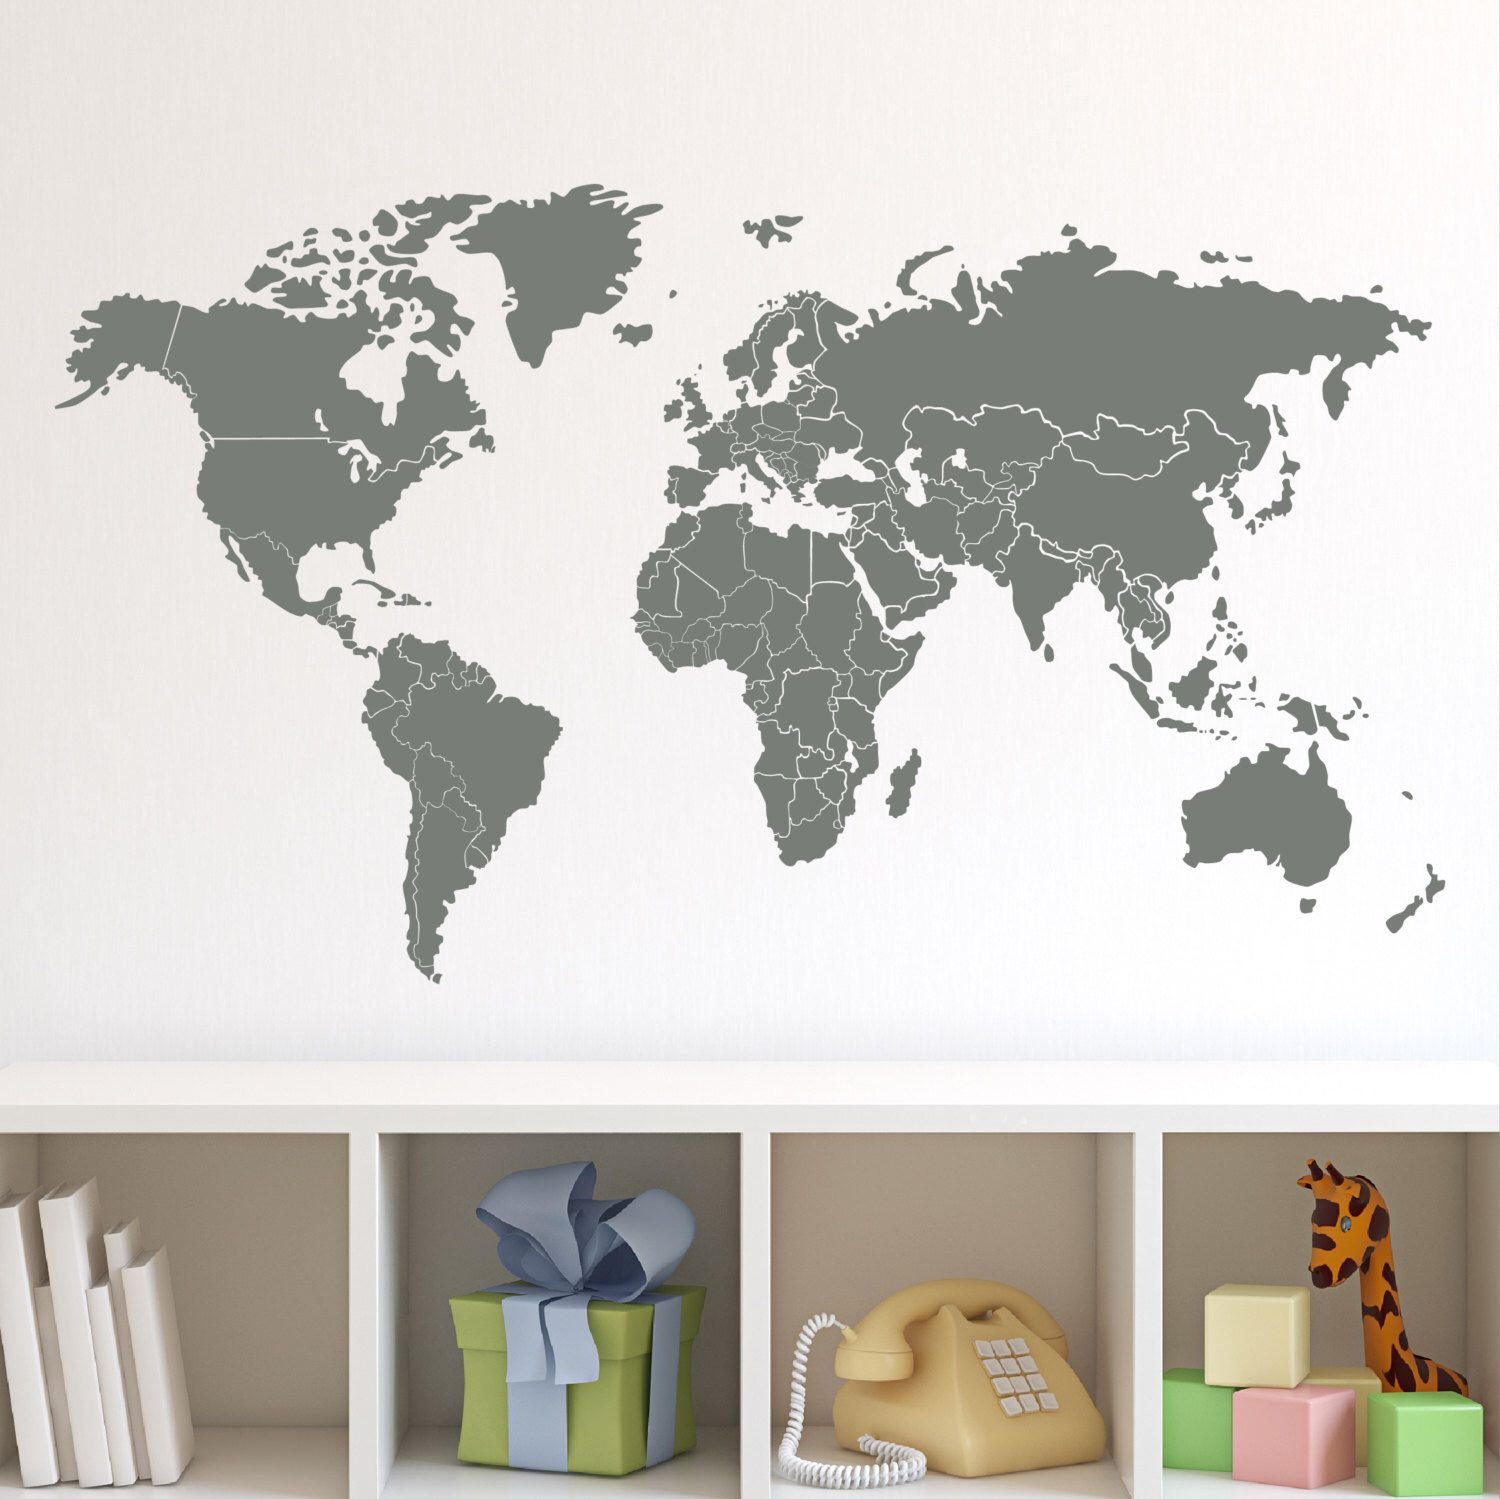 World map with countries borders wall decal by zapoart on etsy world map with countries borders wall decal by zapoart on etsy httpswww gumiabroncs Image collections